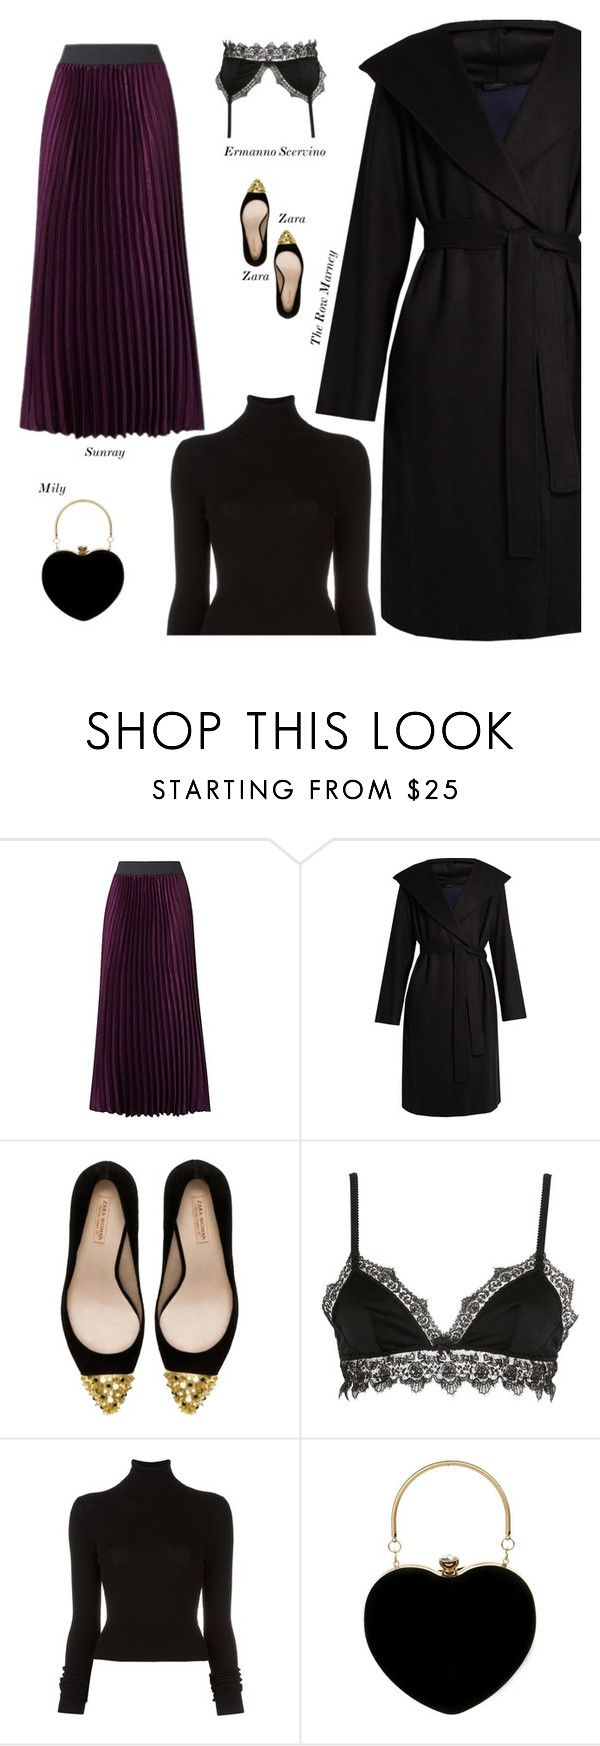 """""""Sexy Modest Winter Date Outfit"""" by s-thinks ❤ liked on Polyvore featuring The Row, Zara, Ermanno Scervino Lingerie and BLK DNM"""